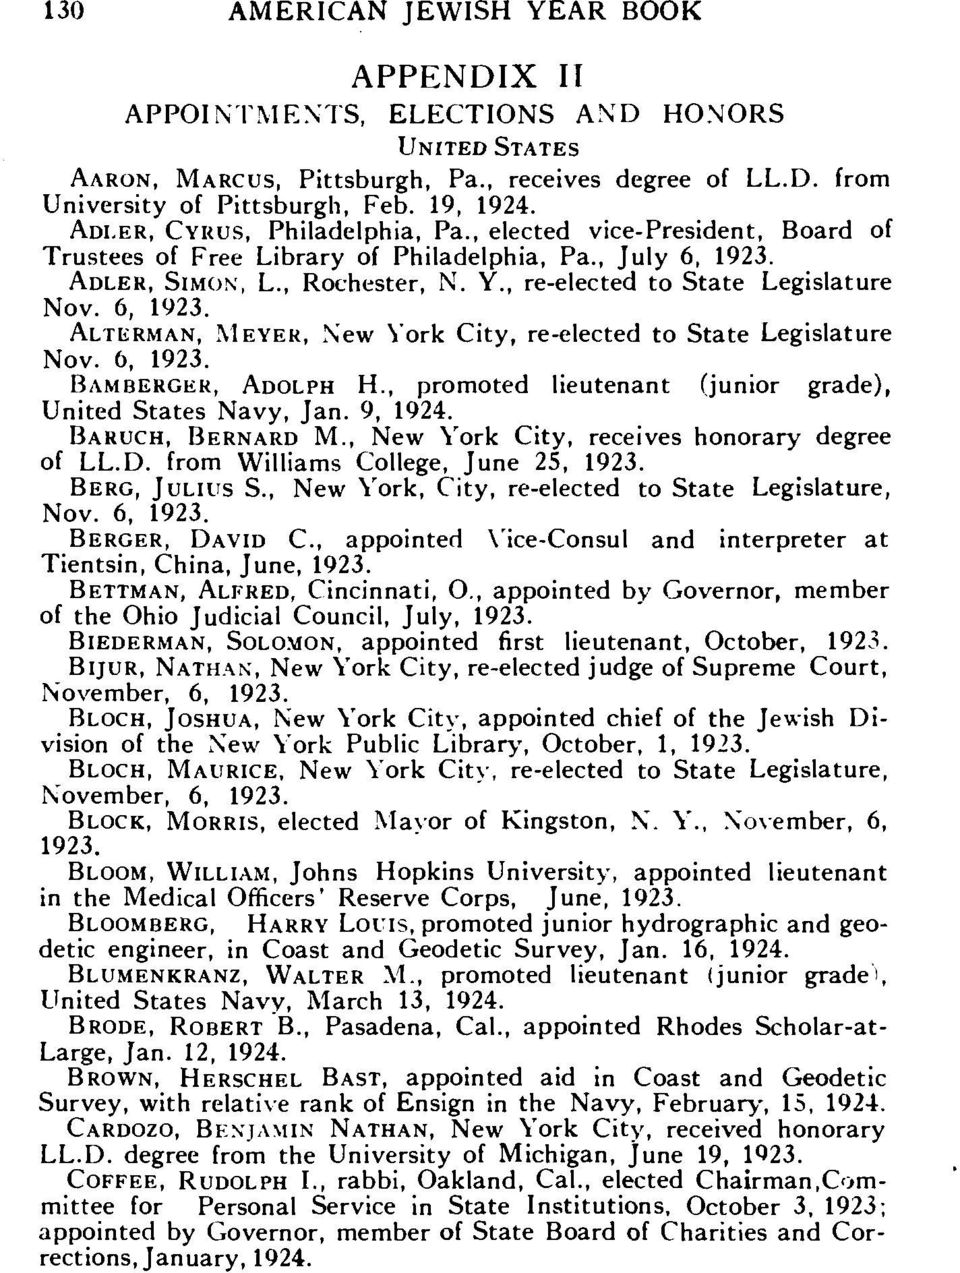 6, ALTERMAN, MEYER, New York City, re-elected to State Legislature Nov. 6, BAMBERGER, ADOLPH H., promoted lieutenant (junior grade), United States Navy, Jan. 9, 1924. BARUCH, BERNARD M.